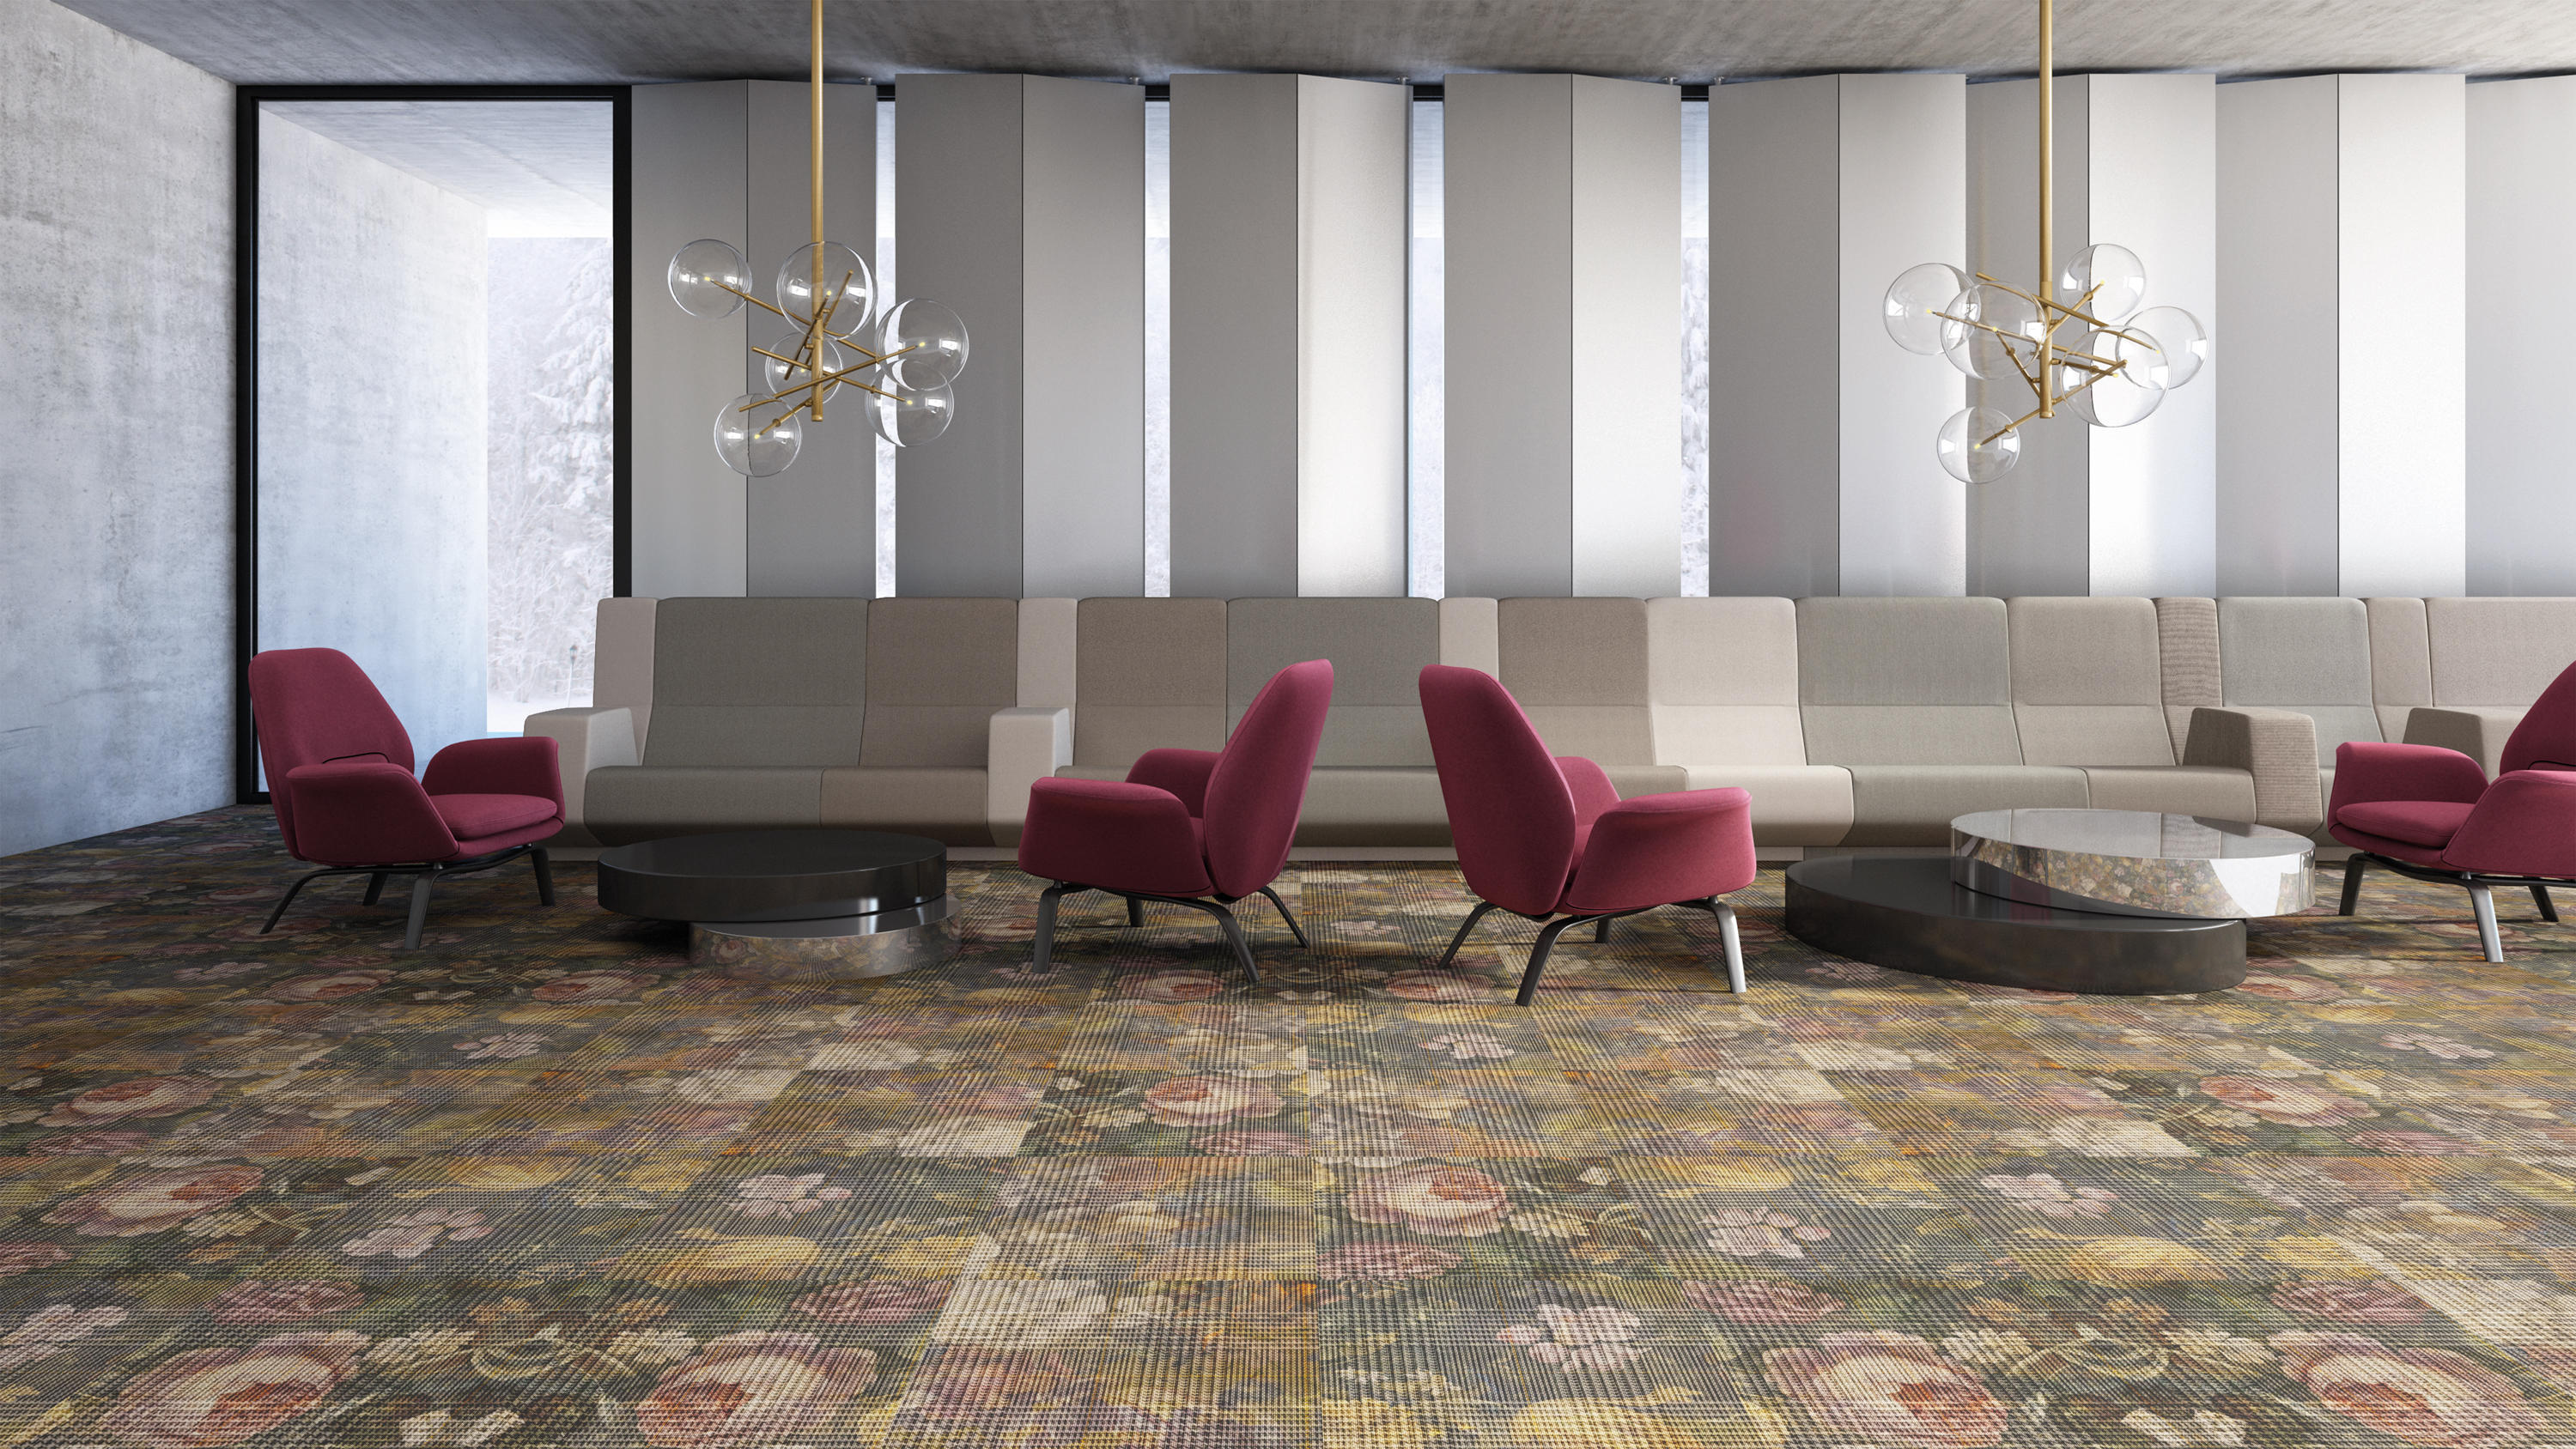 Aberdeen 1001 rugs designer rugs from object carpet architonic aberdeen 1001 by object carpet dailygadgetfo Images